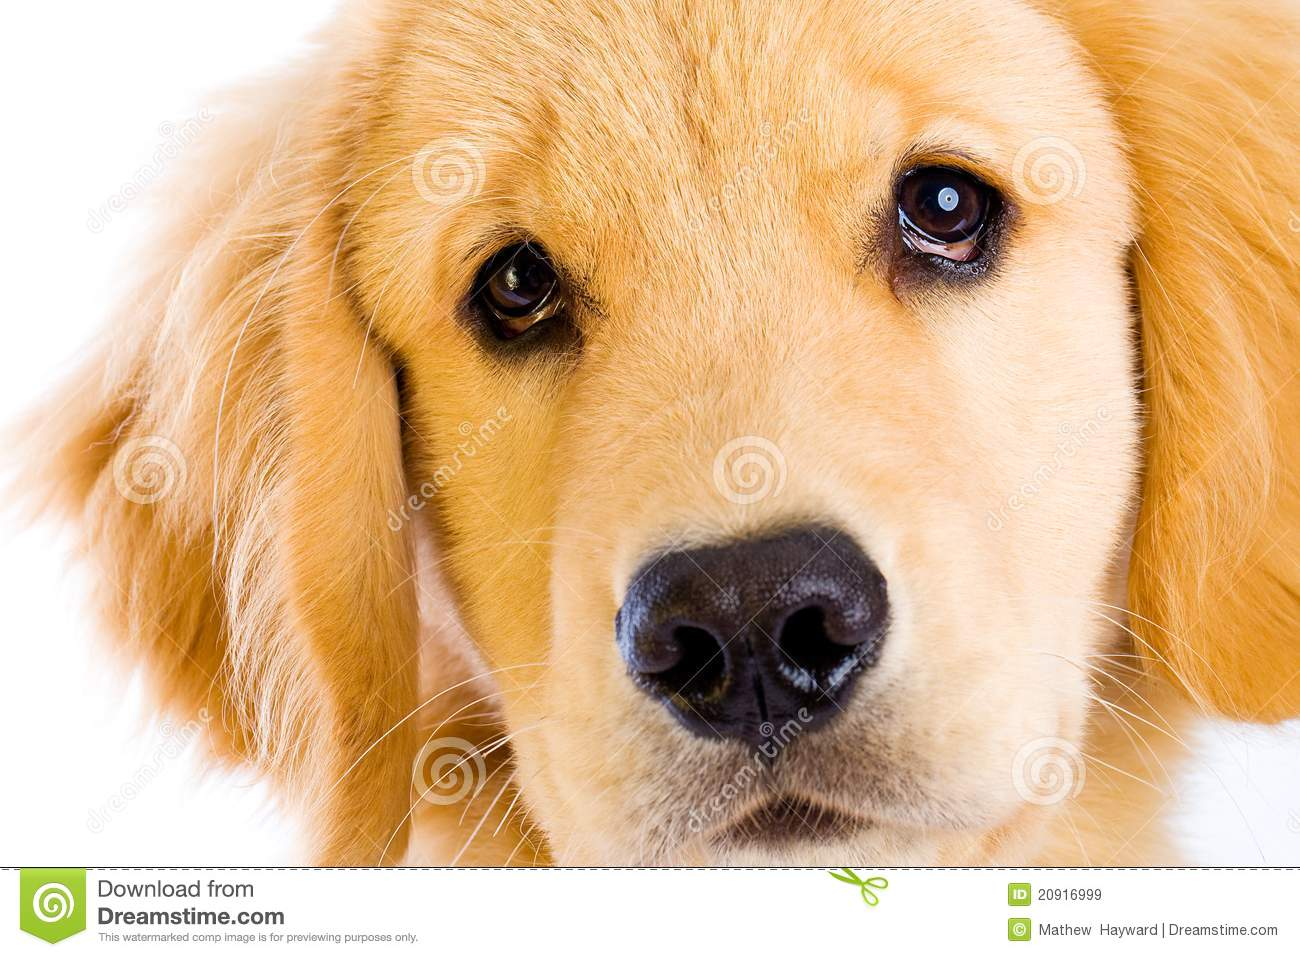 ... golden retriever puppy giving a sad dog face, begging with his eyes